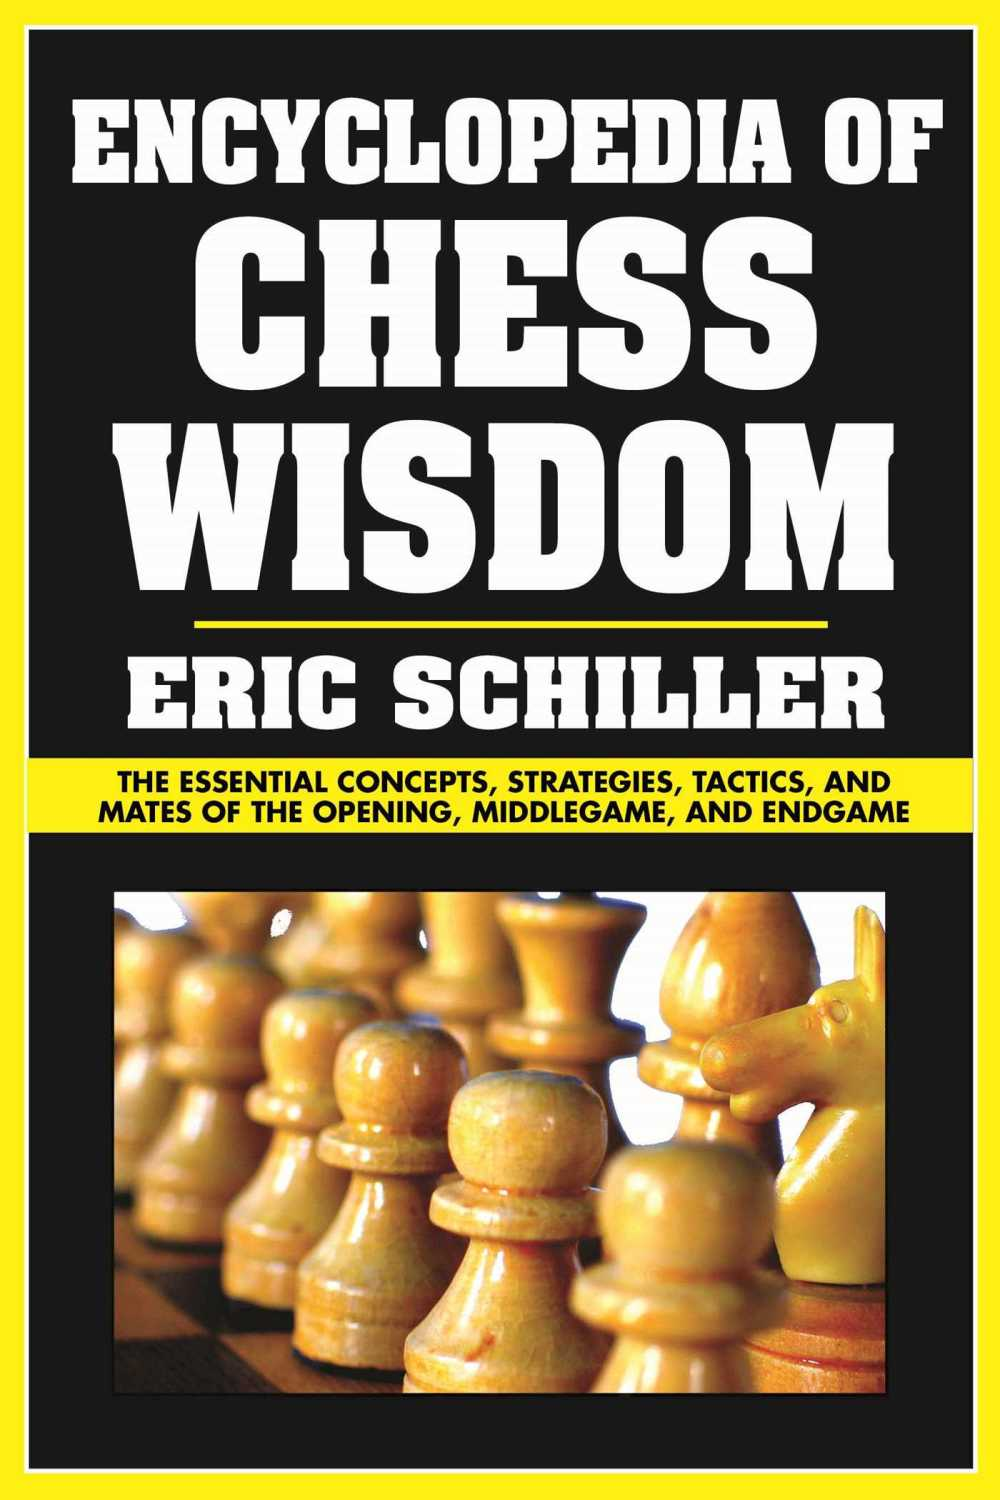 medium resolution of book cover image jpg encyclopedia of chess wisdom